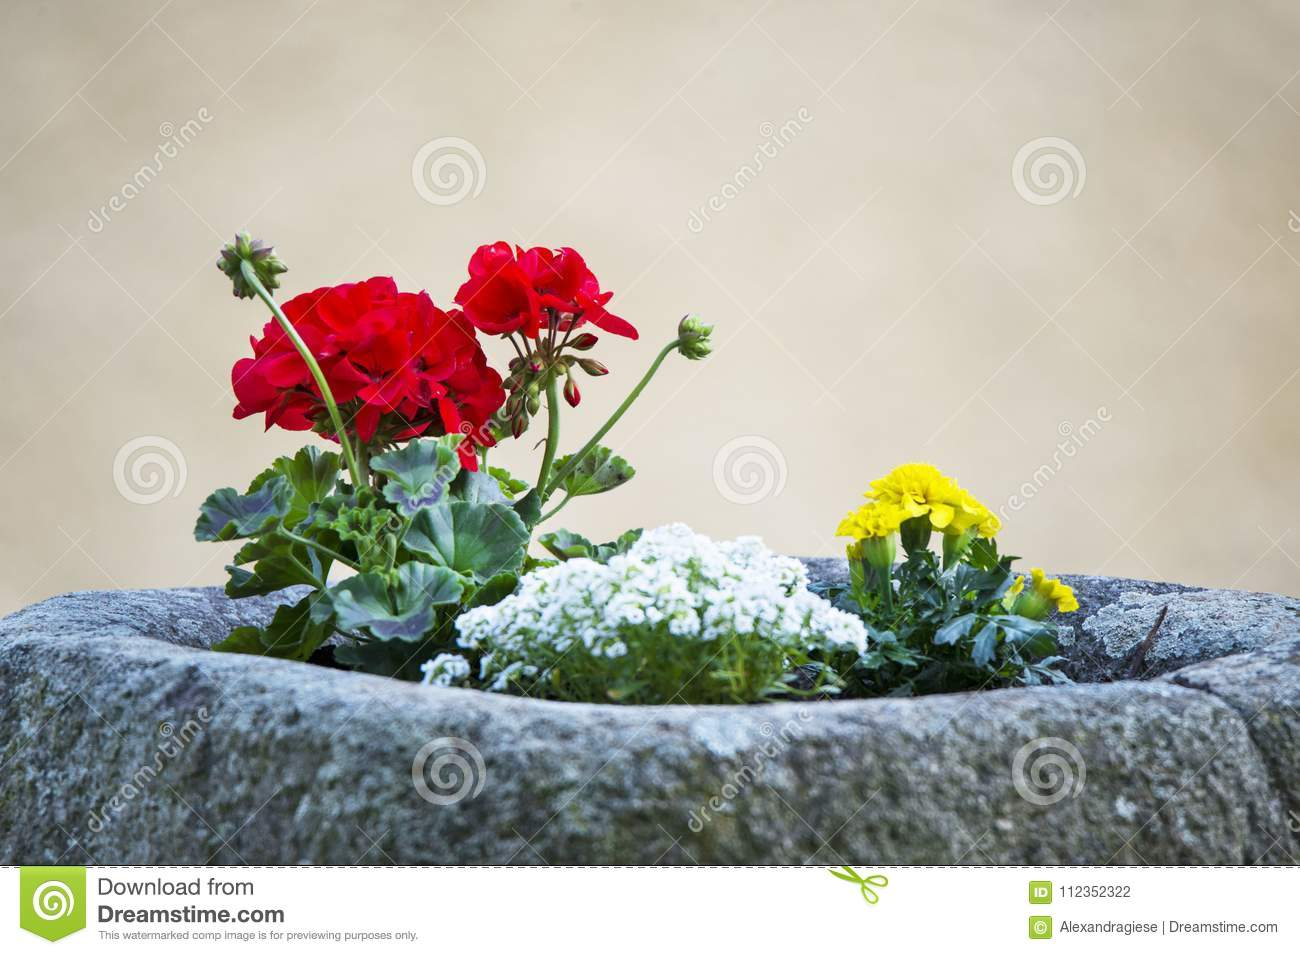 Geranium And Marigold Flowers Potted In A Stone Cost Stock Photo